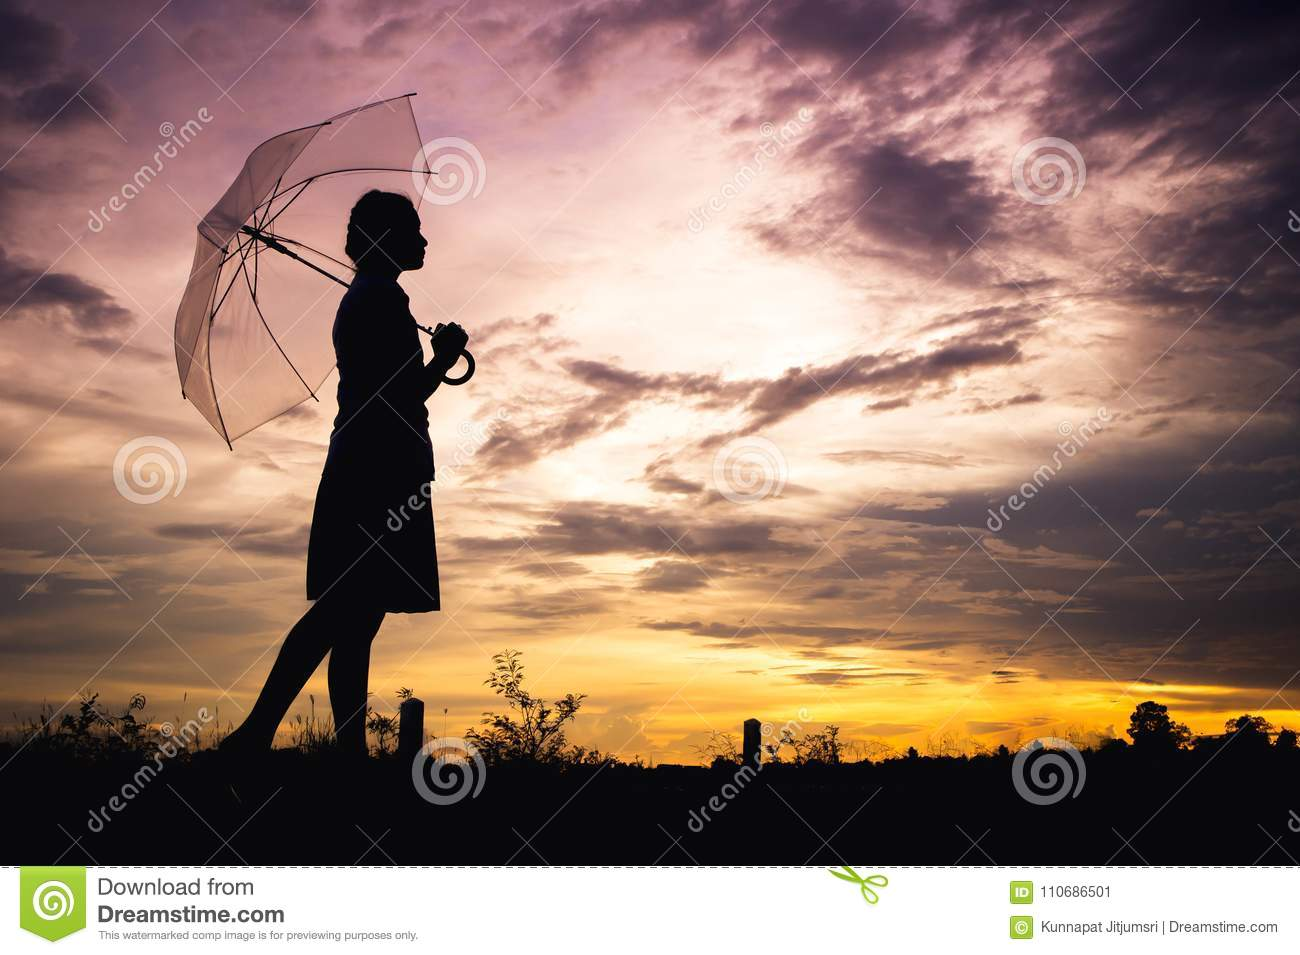 The girls silhouette style walking alone outdoor and umbrella in